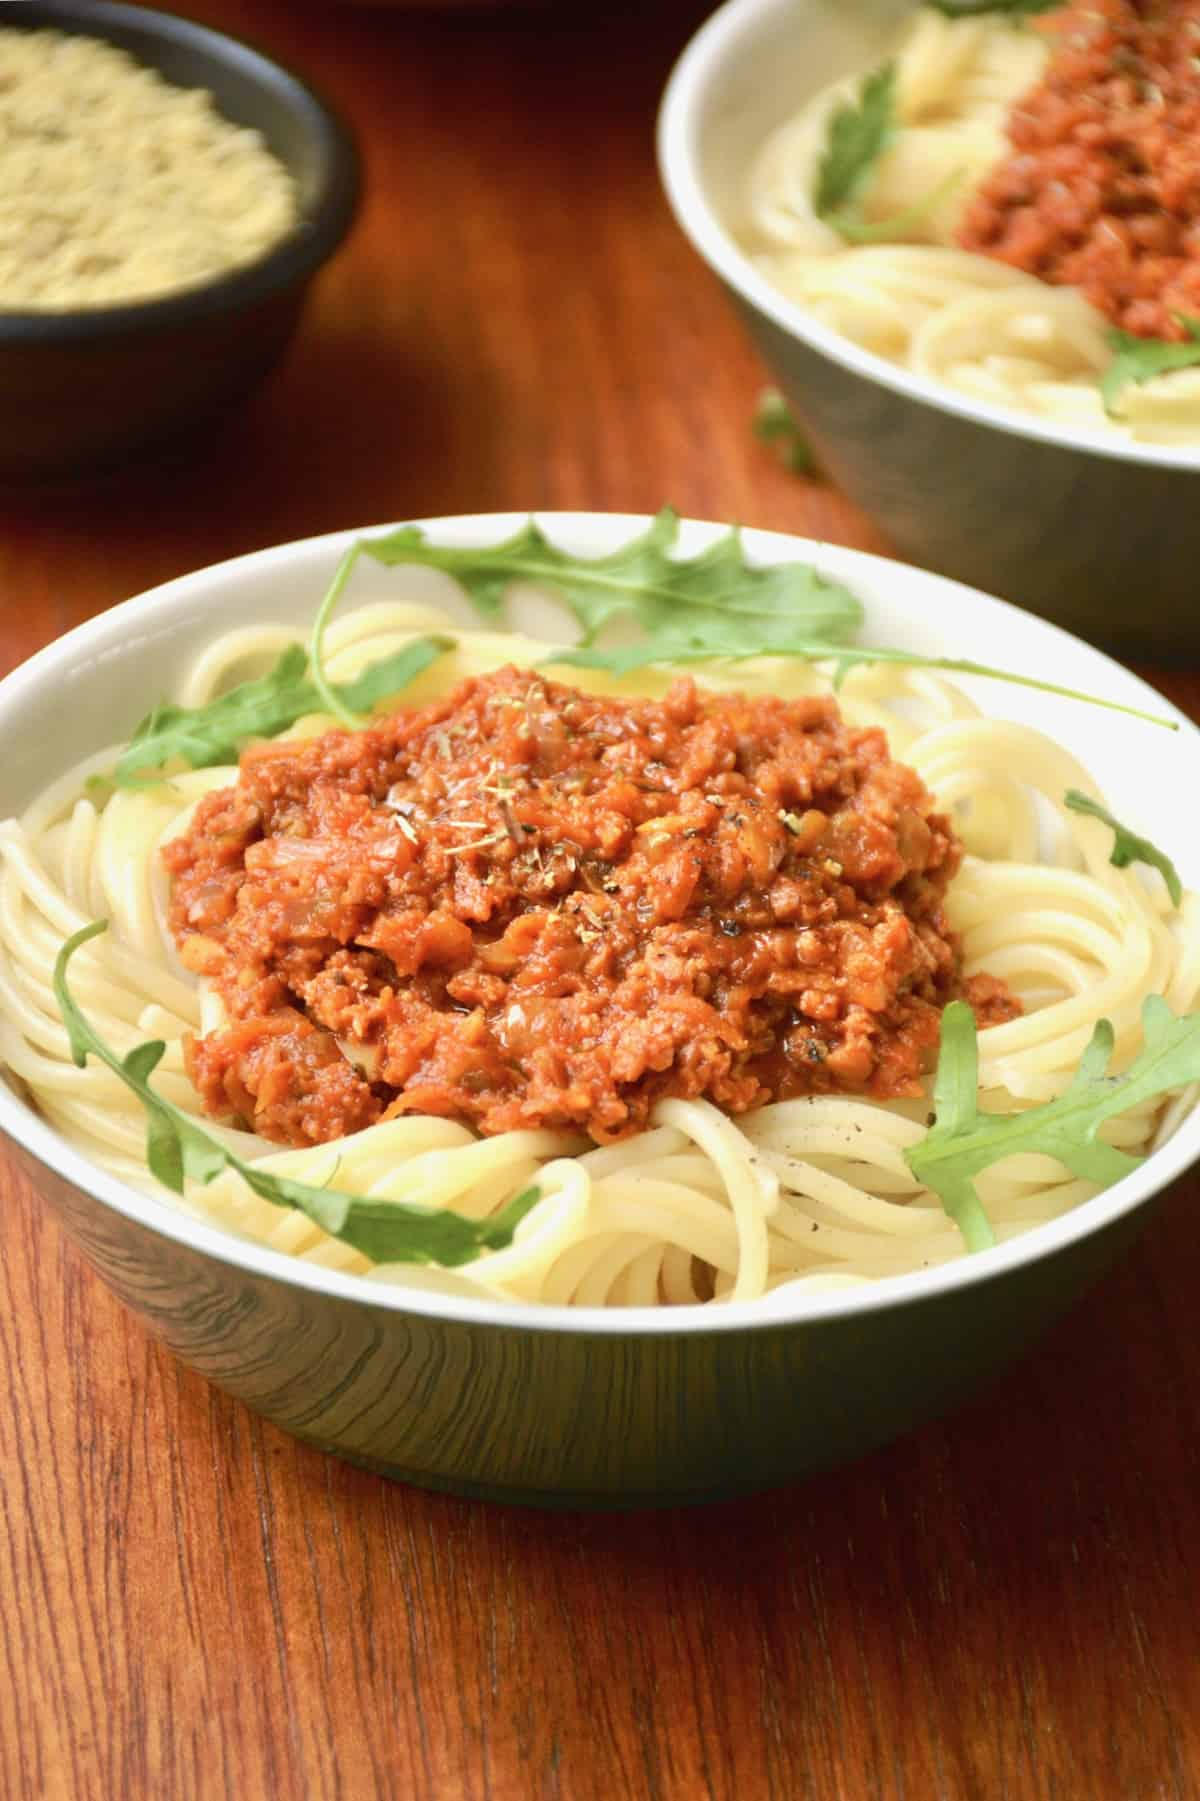 A bowl of vegan spaghetti bolognese with some decorative rocket leaves.